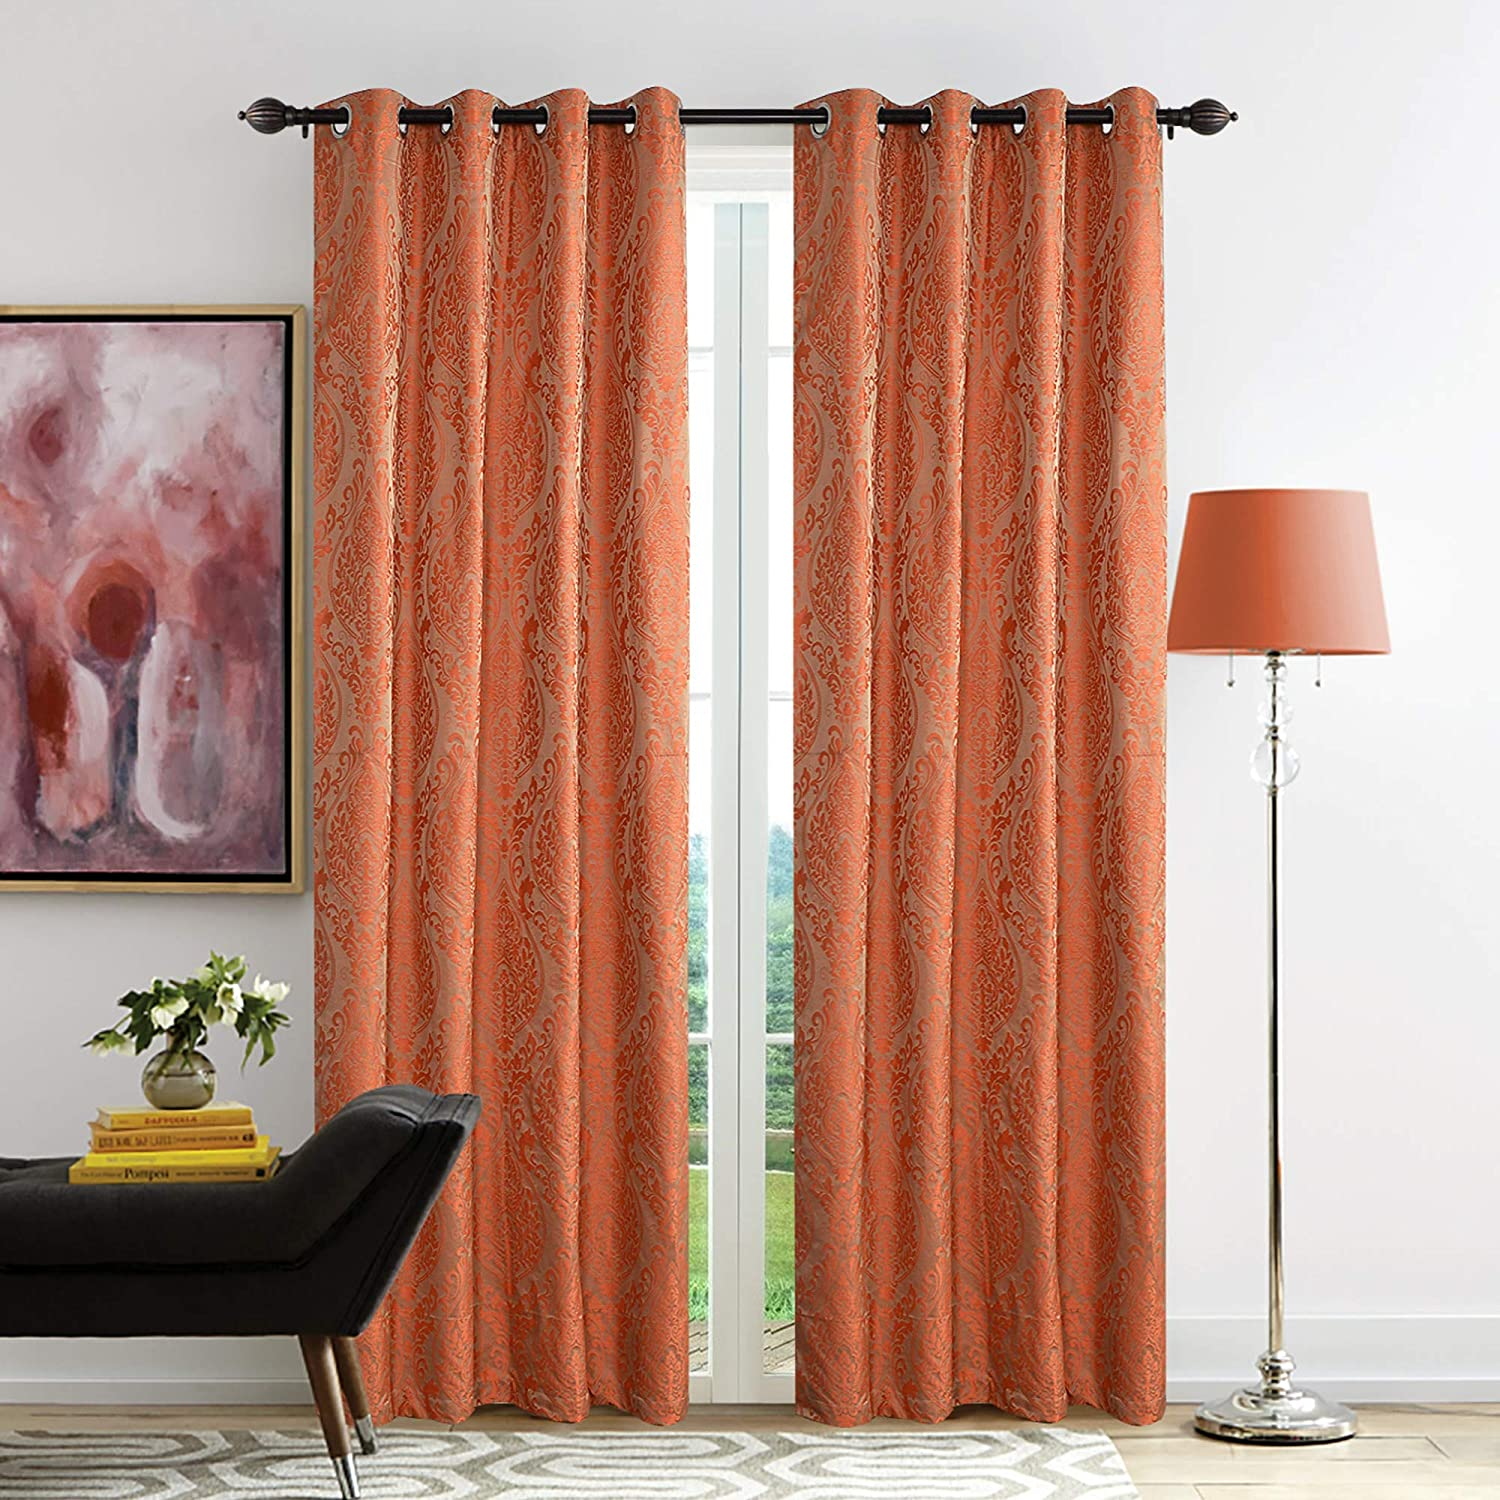 Buy Deco Window Polyester Blend Modern Design Eyelet Door Curtain for  Living Room (Orange, 7.5 Feet) - Set of 2 Online at Low Prices in India -  Amazon.in